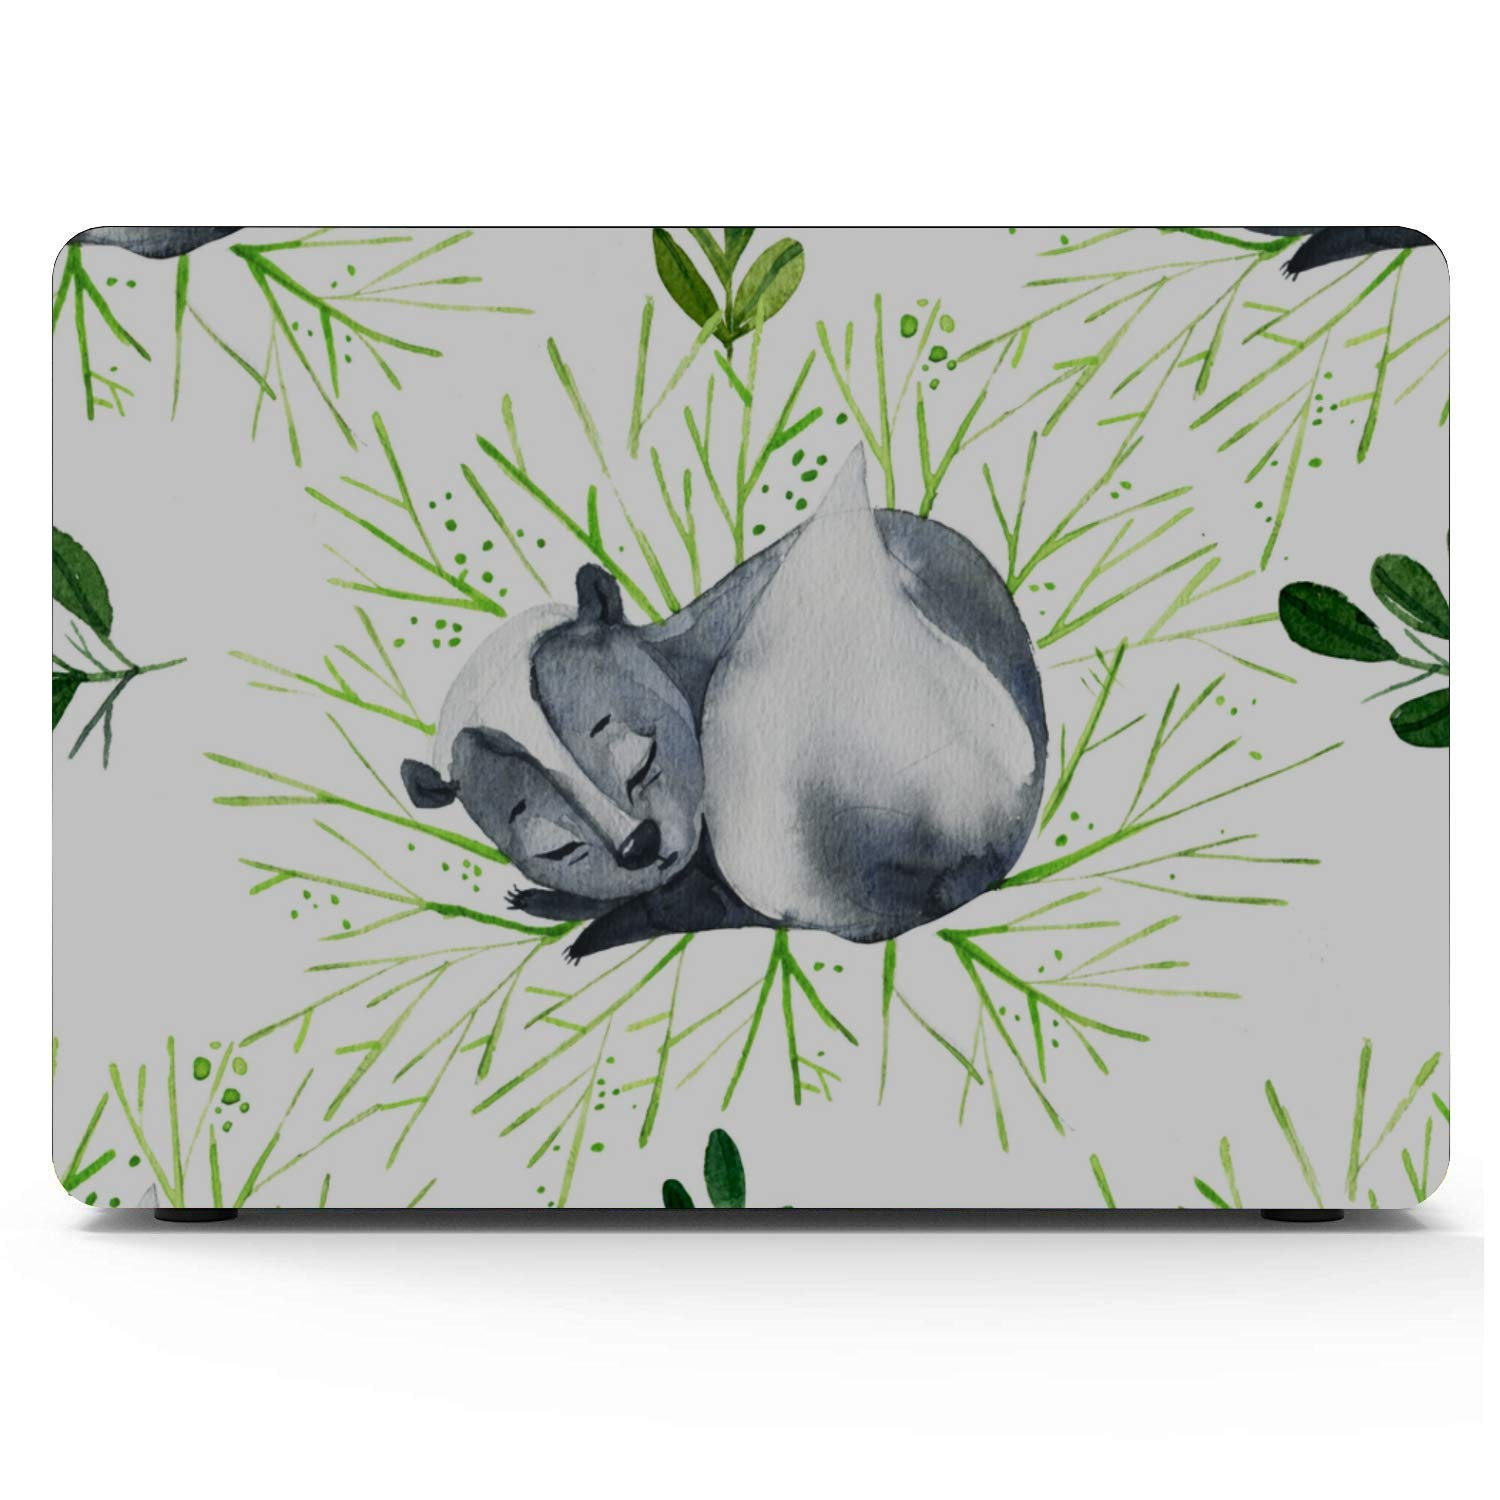 A1707 MacBook Pro Case Spring Cartoon Skunk Flowers Leaf Plastic Hard Shell Compatible Mac Air 11 Pro 13 15 Mac Book Cases Protection for MacBook 2016-2019 Version